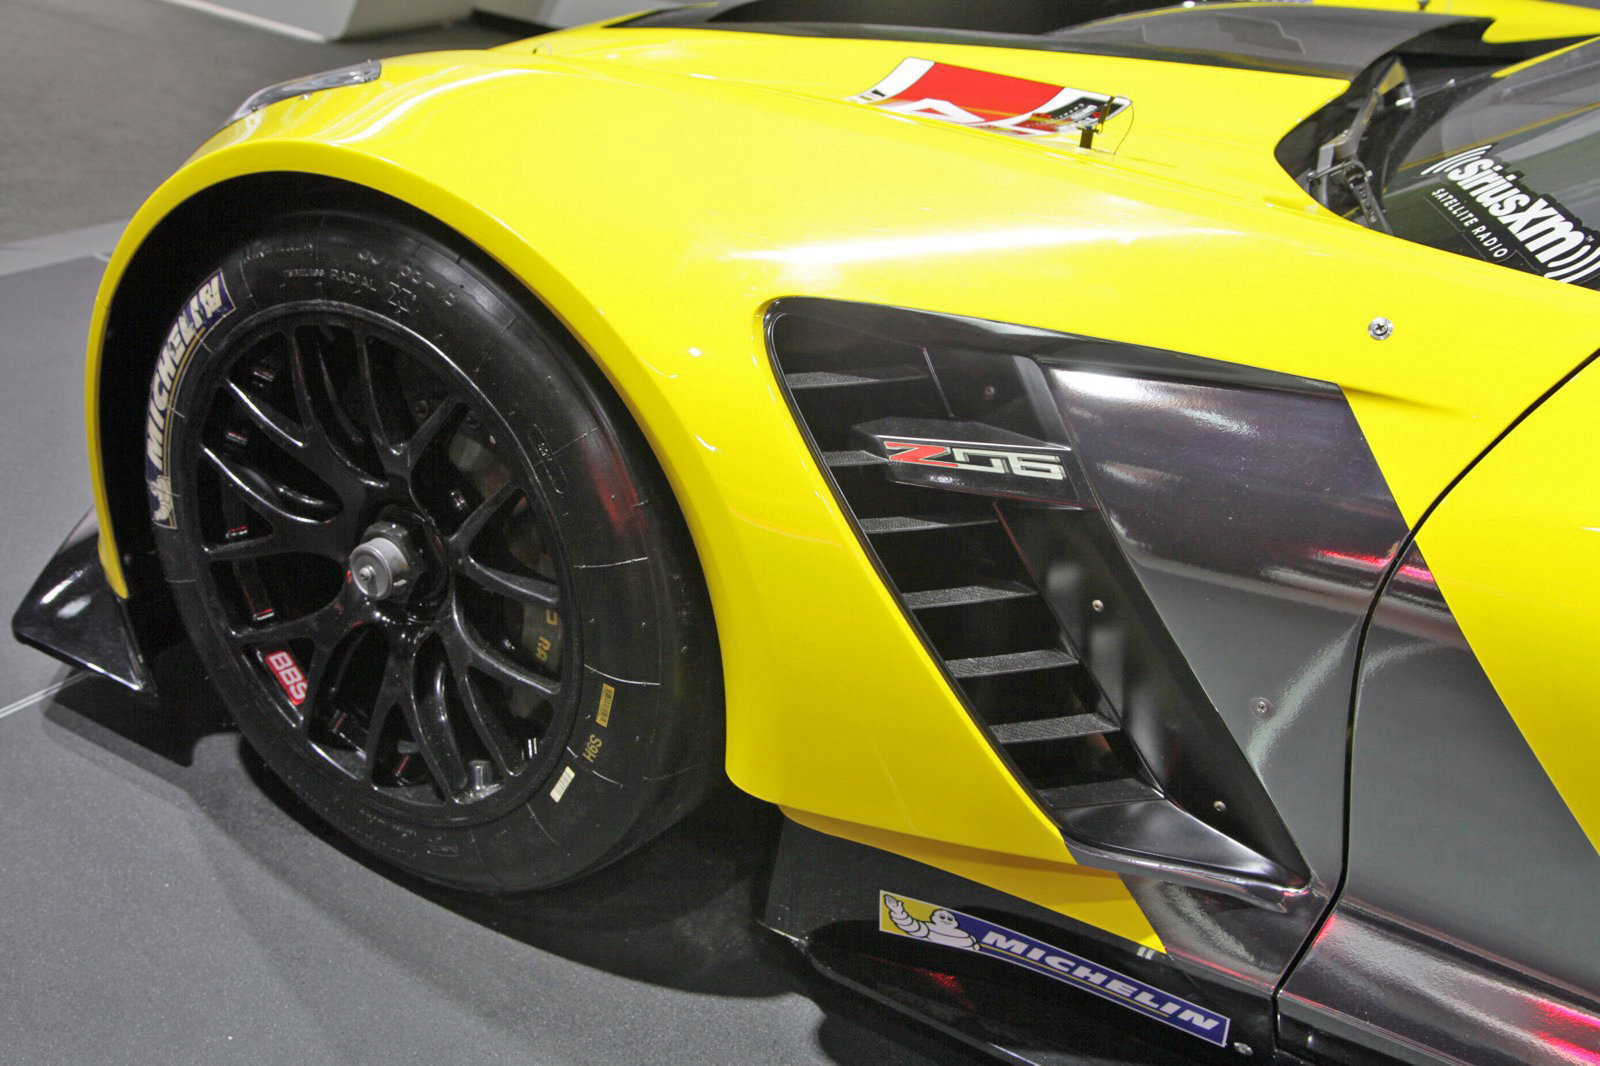 2014 chevrolet corvette c7 r picture 612726 car review top speed. Cars Review. Best American Auto & Cars Review